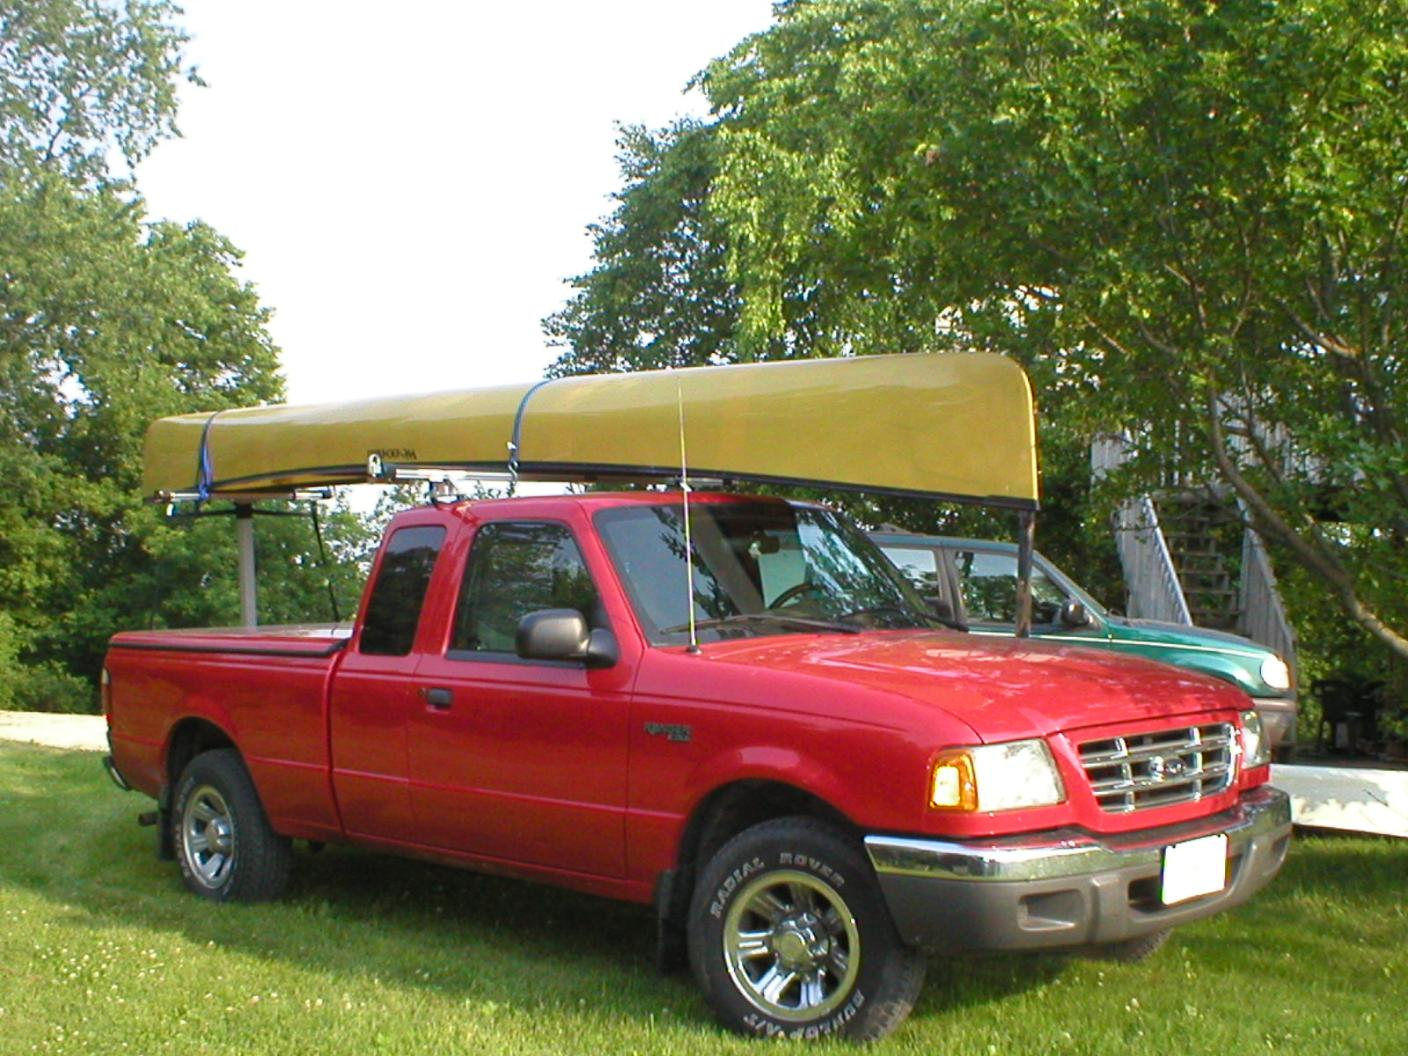 Bwca 2009 Dodge Ram 1500 And Truck Owners How To